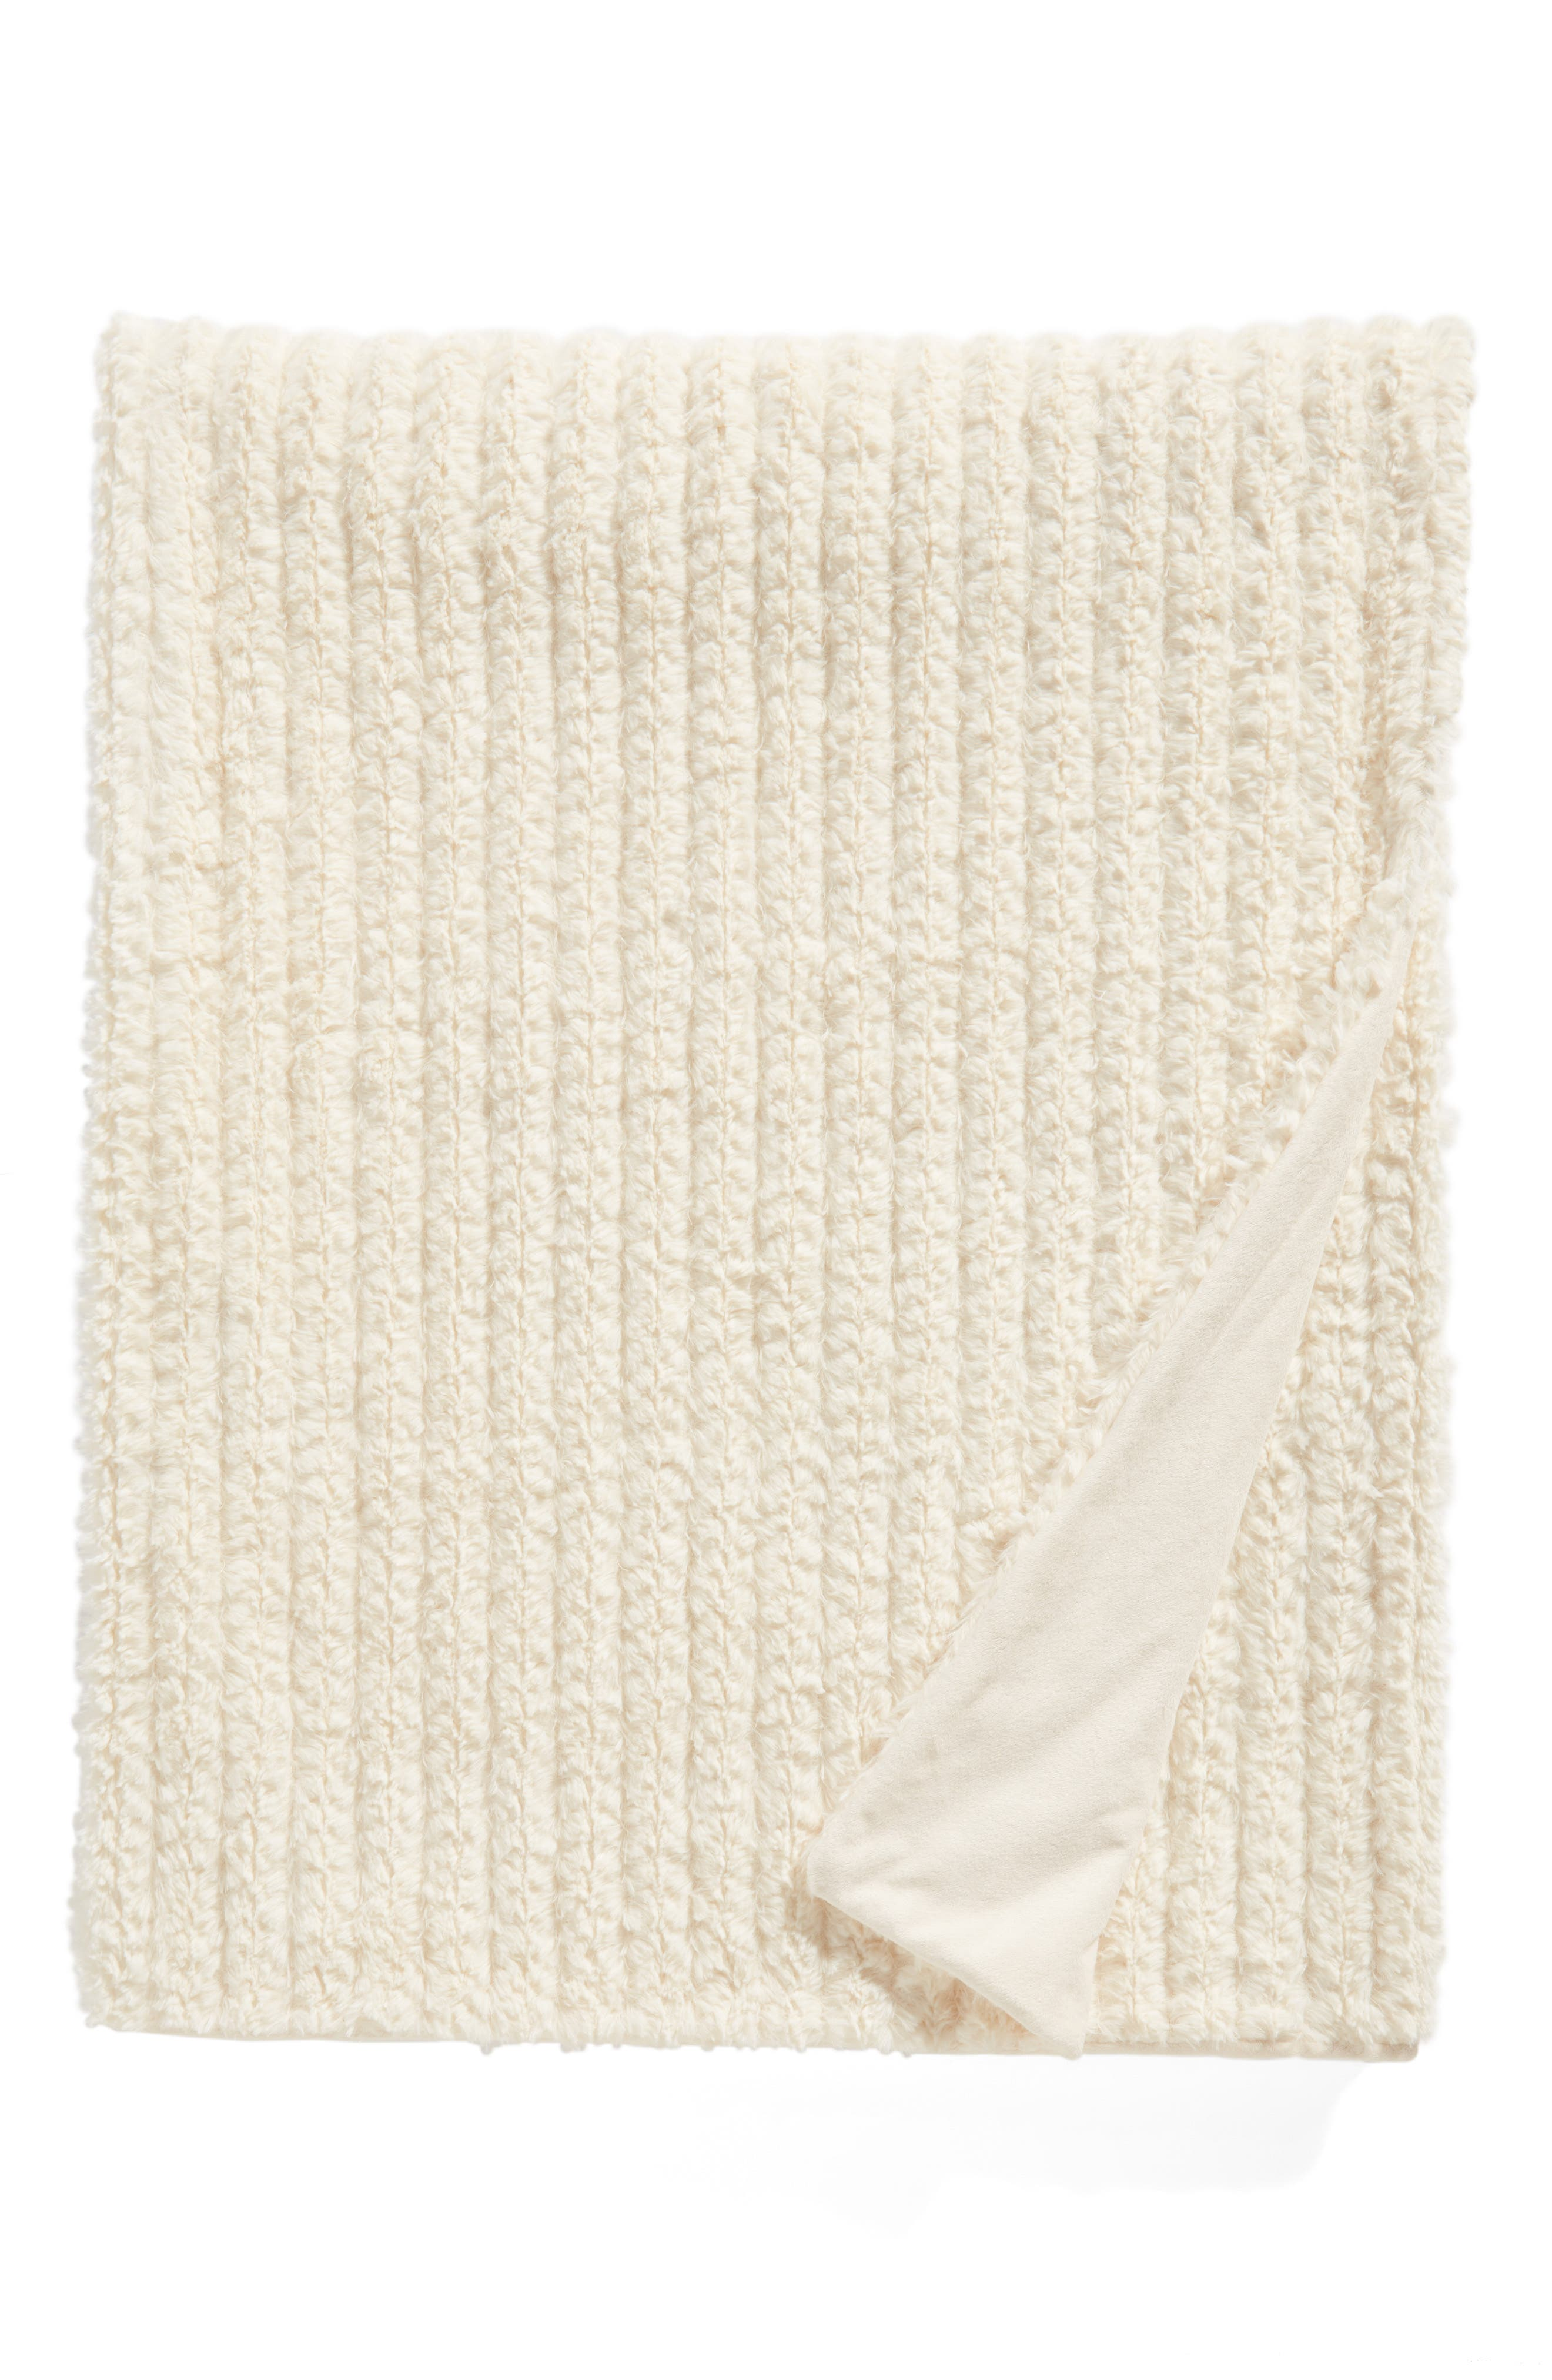 Nordstrom Cozy Plush Faux Fur Blanket,                         Main,                         color, IVORY SOLID